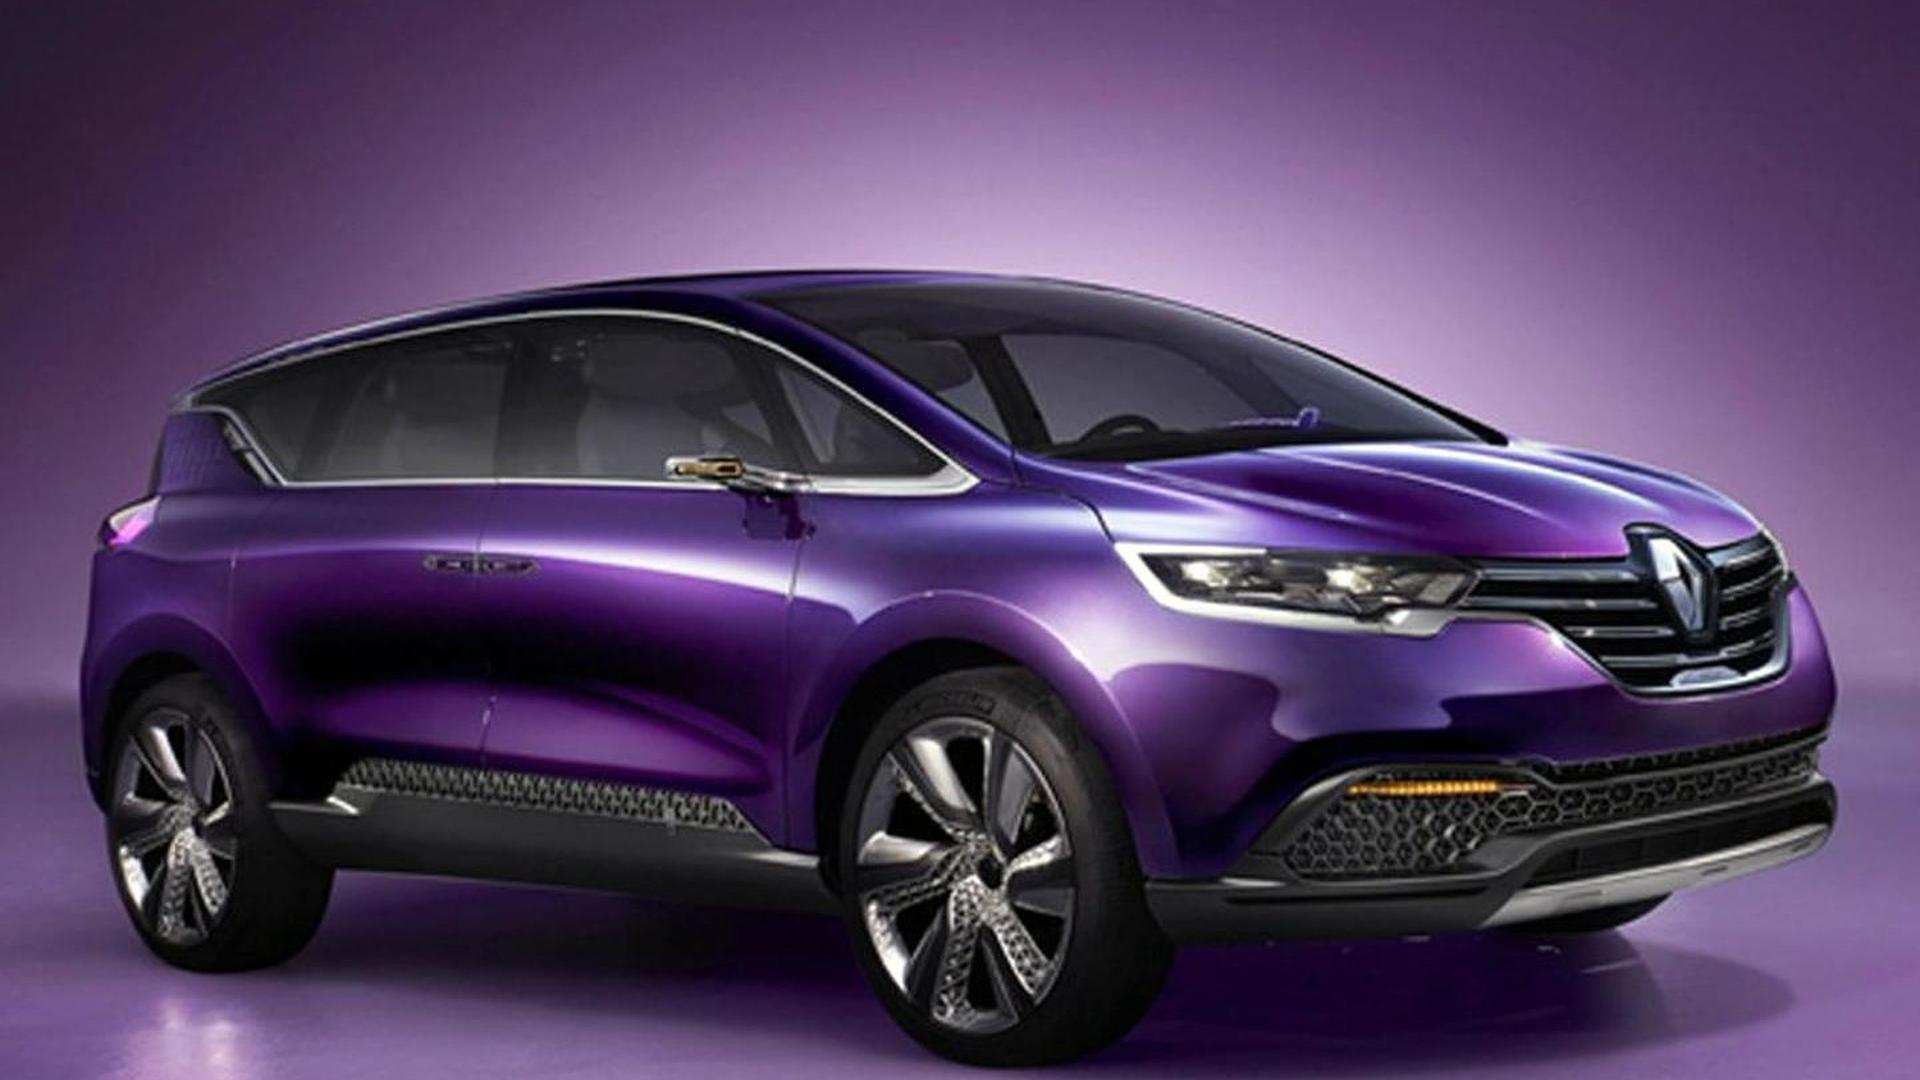 42 Concept of Renault Strategie 2020 Performance for Renault Strategie 2020